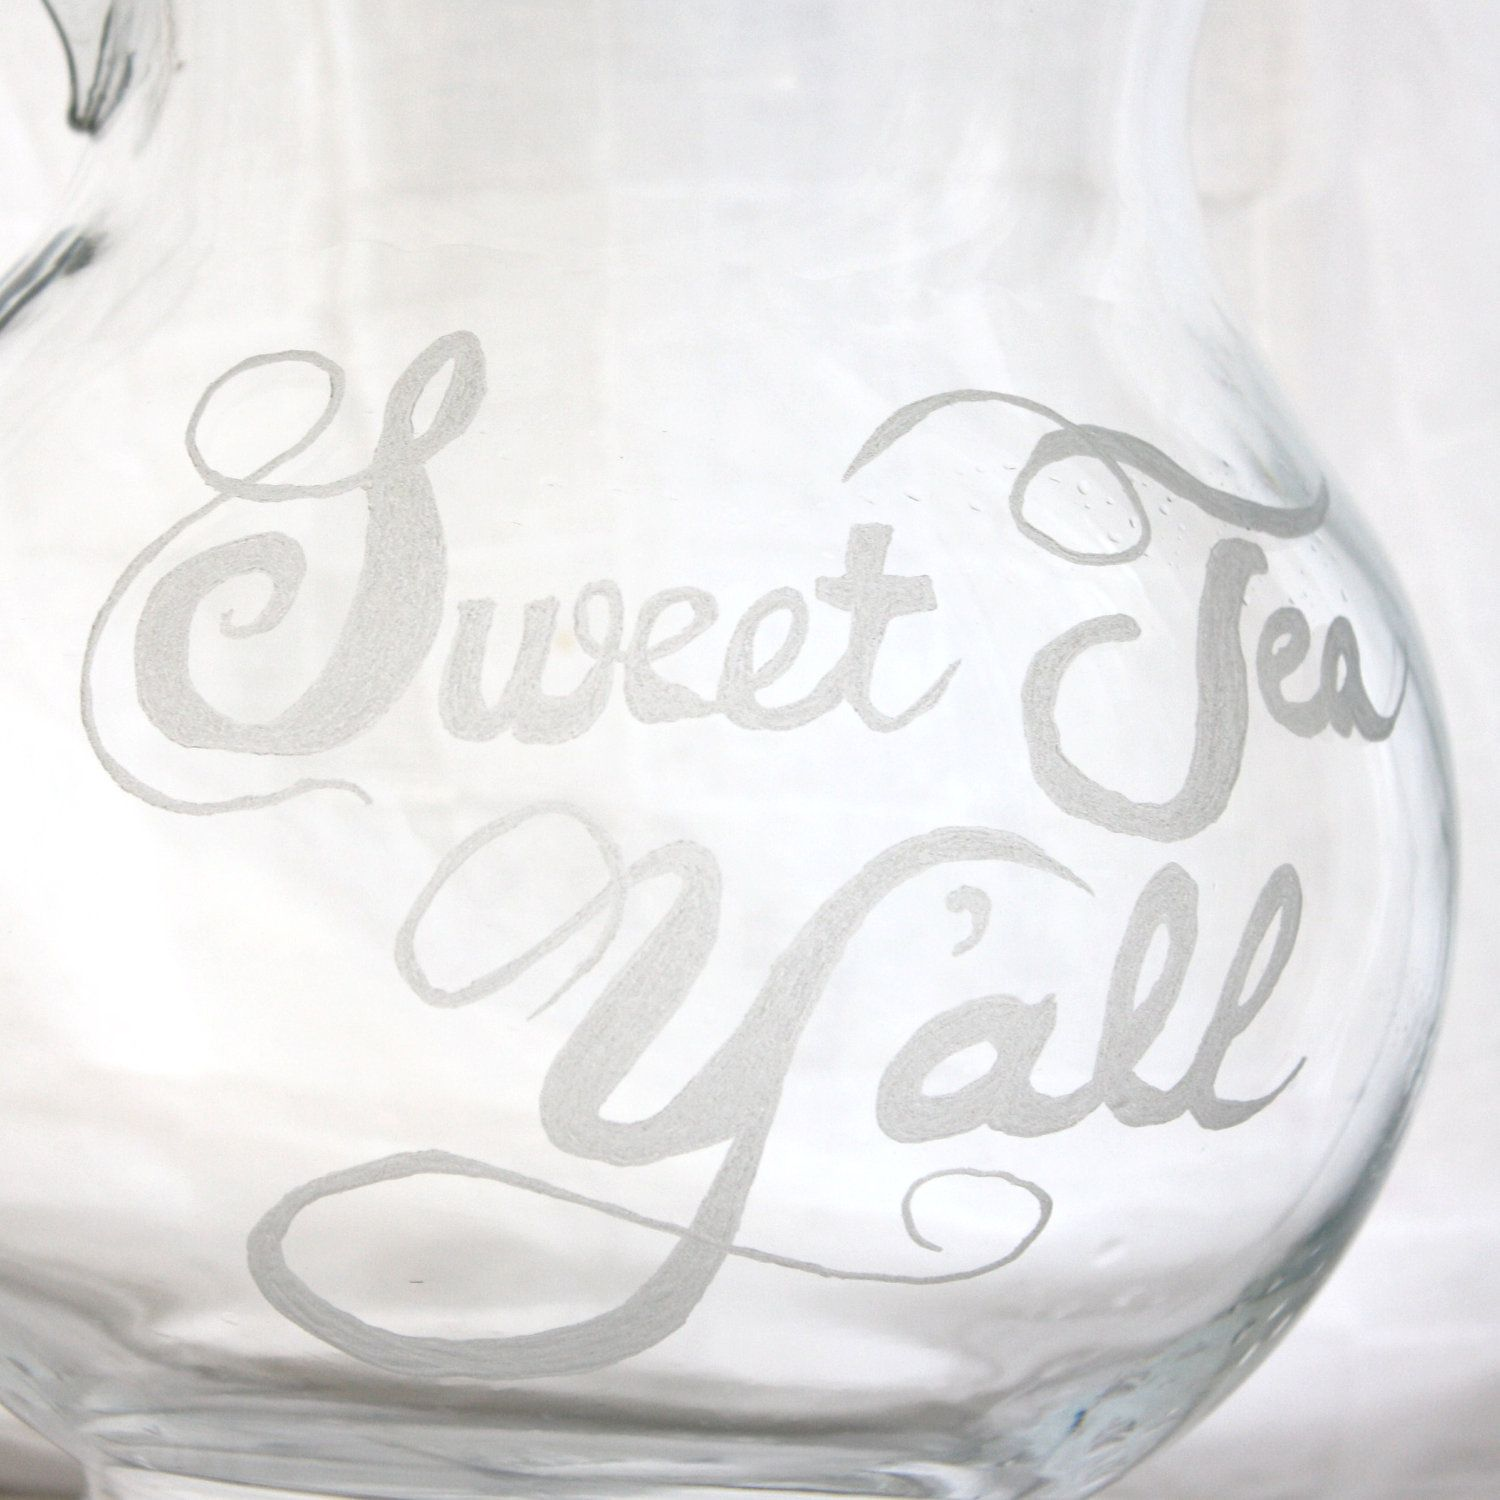 sweet tea yall etched glass pitcher dishwasher safe southern kitchen decor